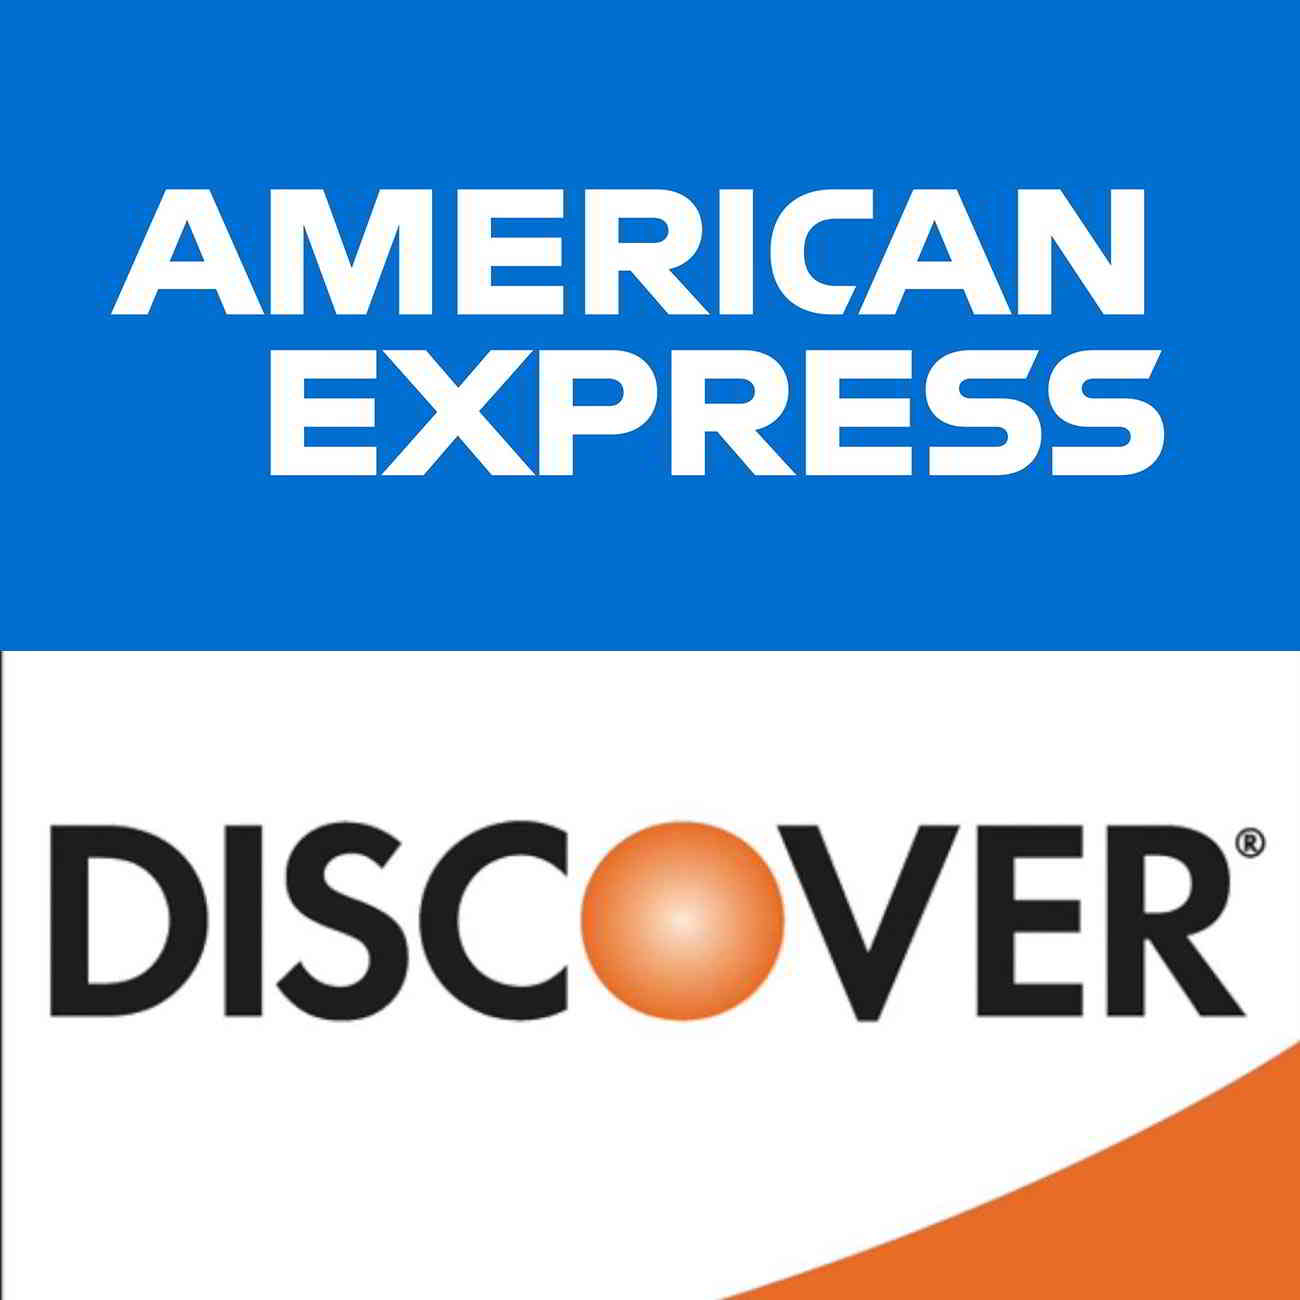 American Express and Discover logos